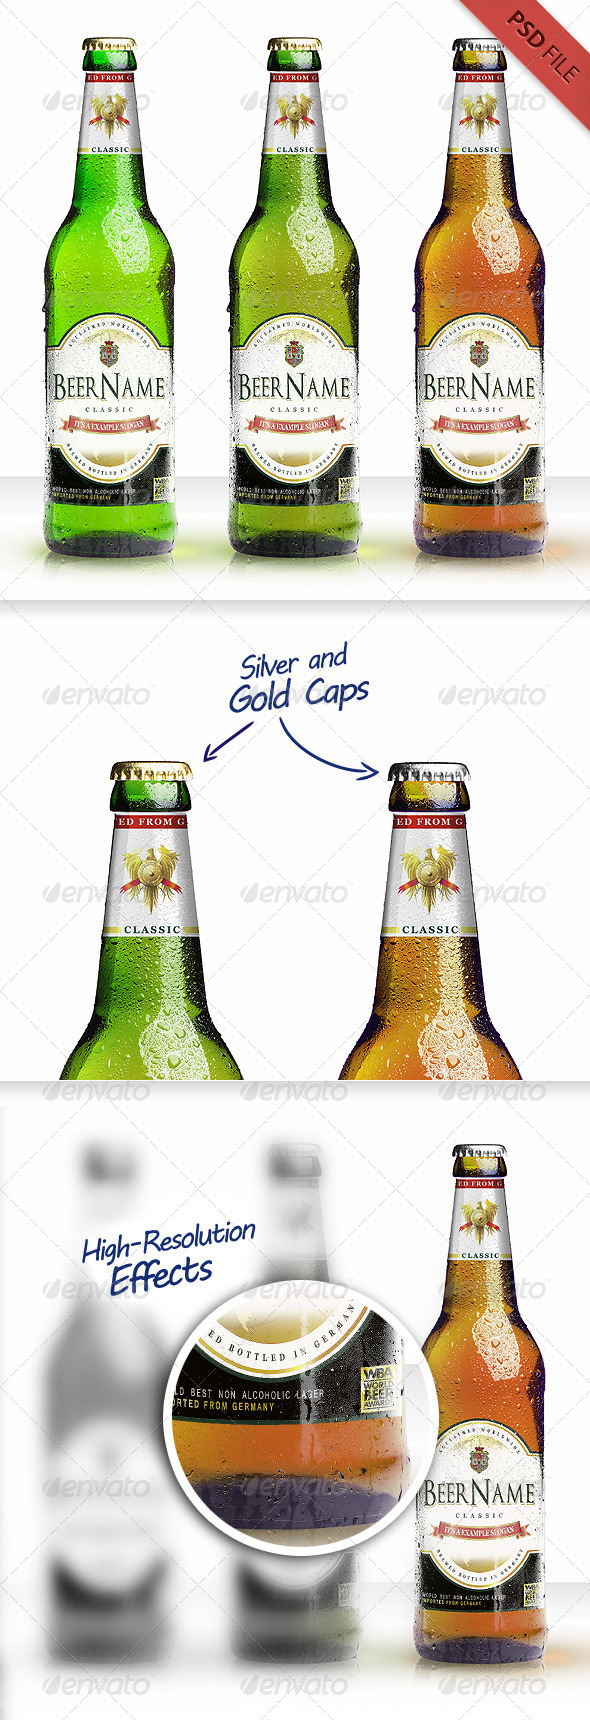 GraphicRiver Realistic Beer Bottle Mockup 8426567